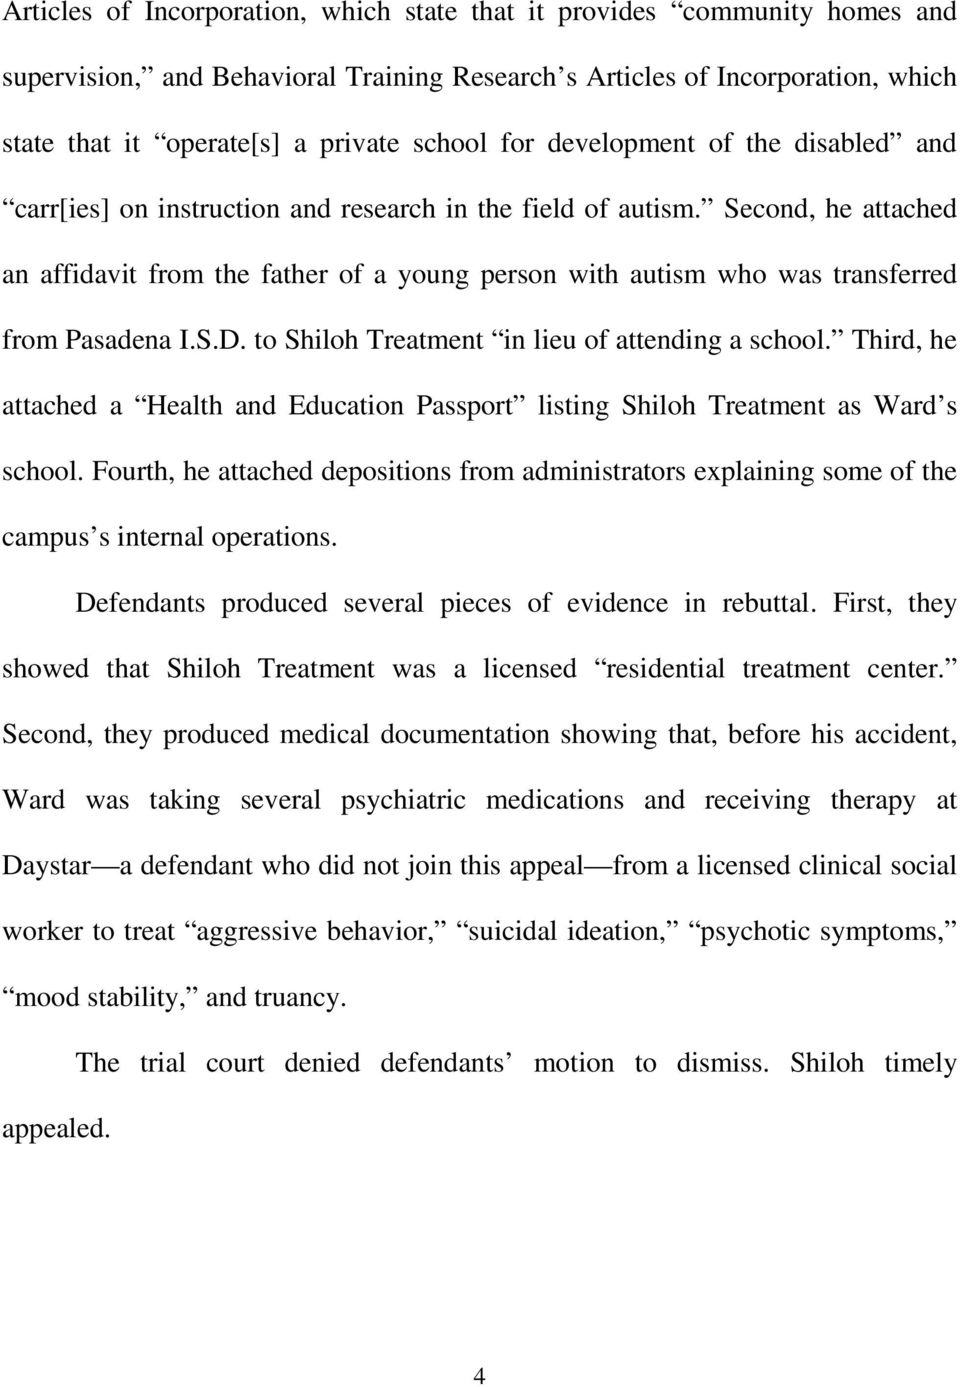 Second, he attached an affidavit from the father of a young person with autism who was transferred from Pasadena I.S.D. to Shiloh Treatment in lieu of attending a school.